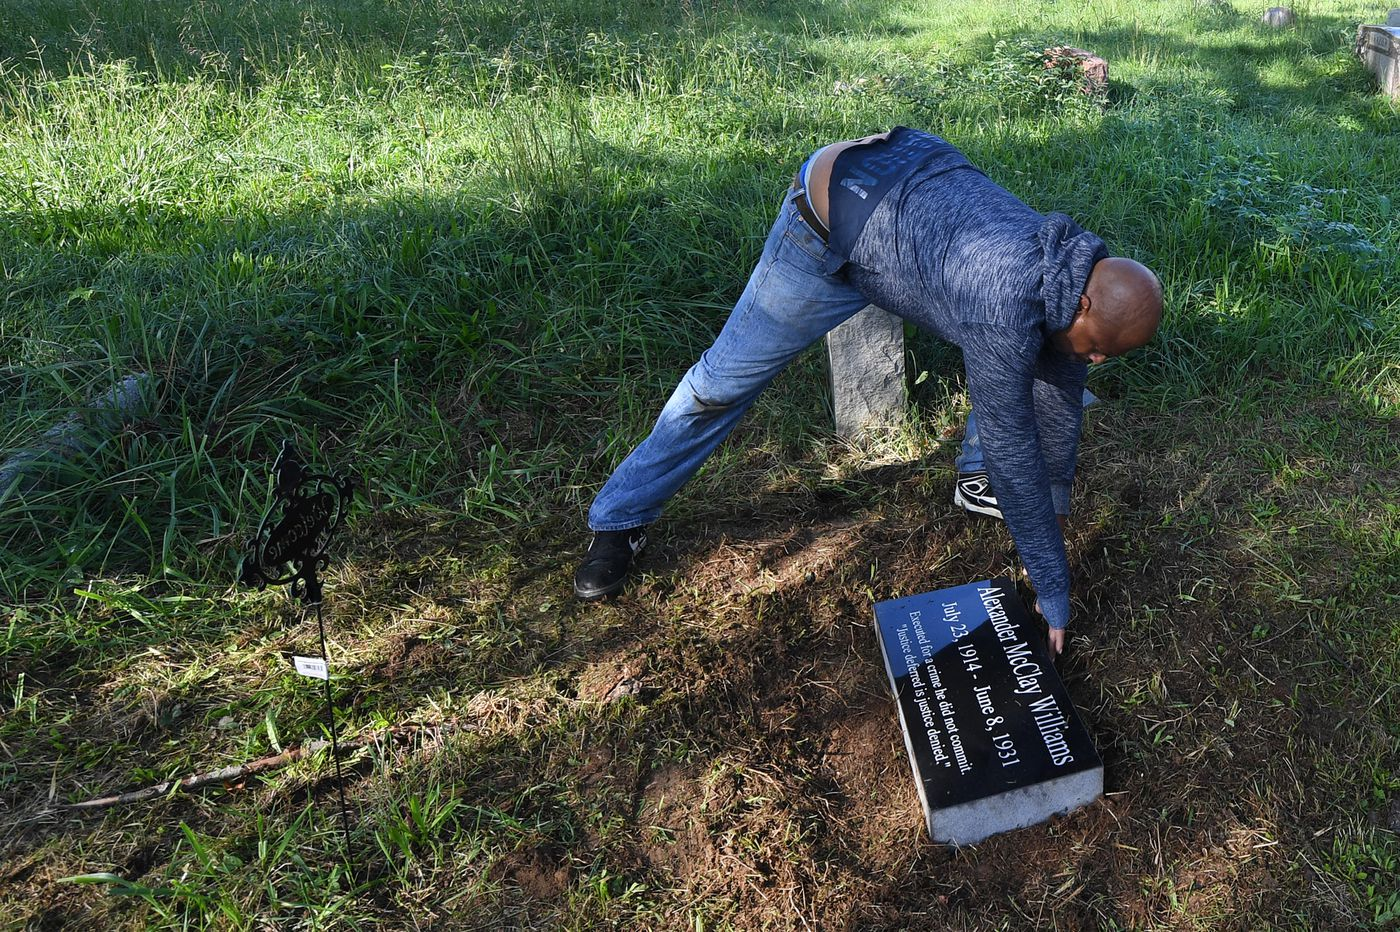 Finally, a headstone for a restless soul executed for a murder no one believes he committed